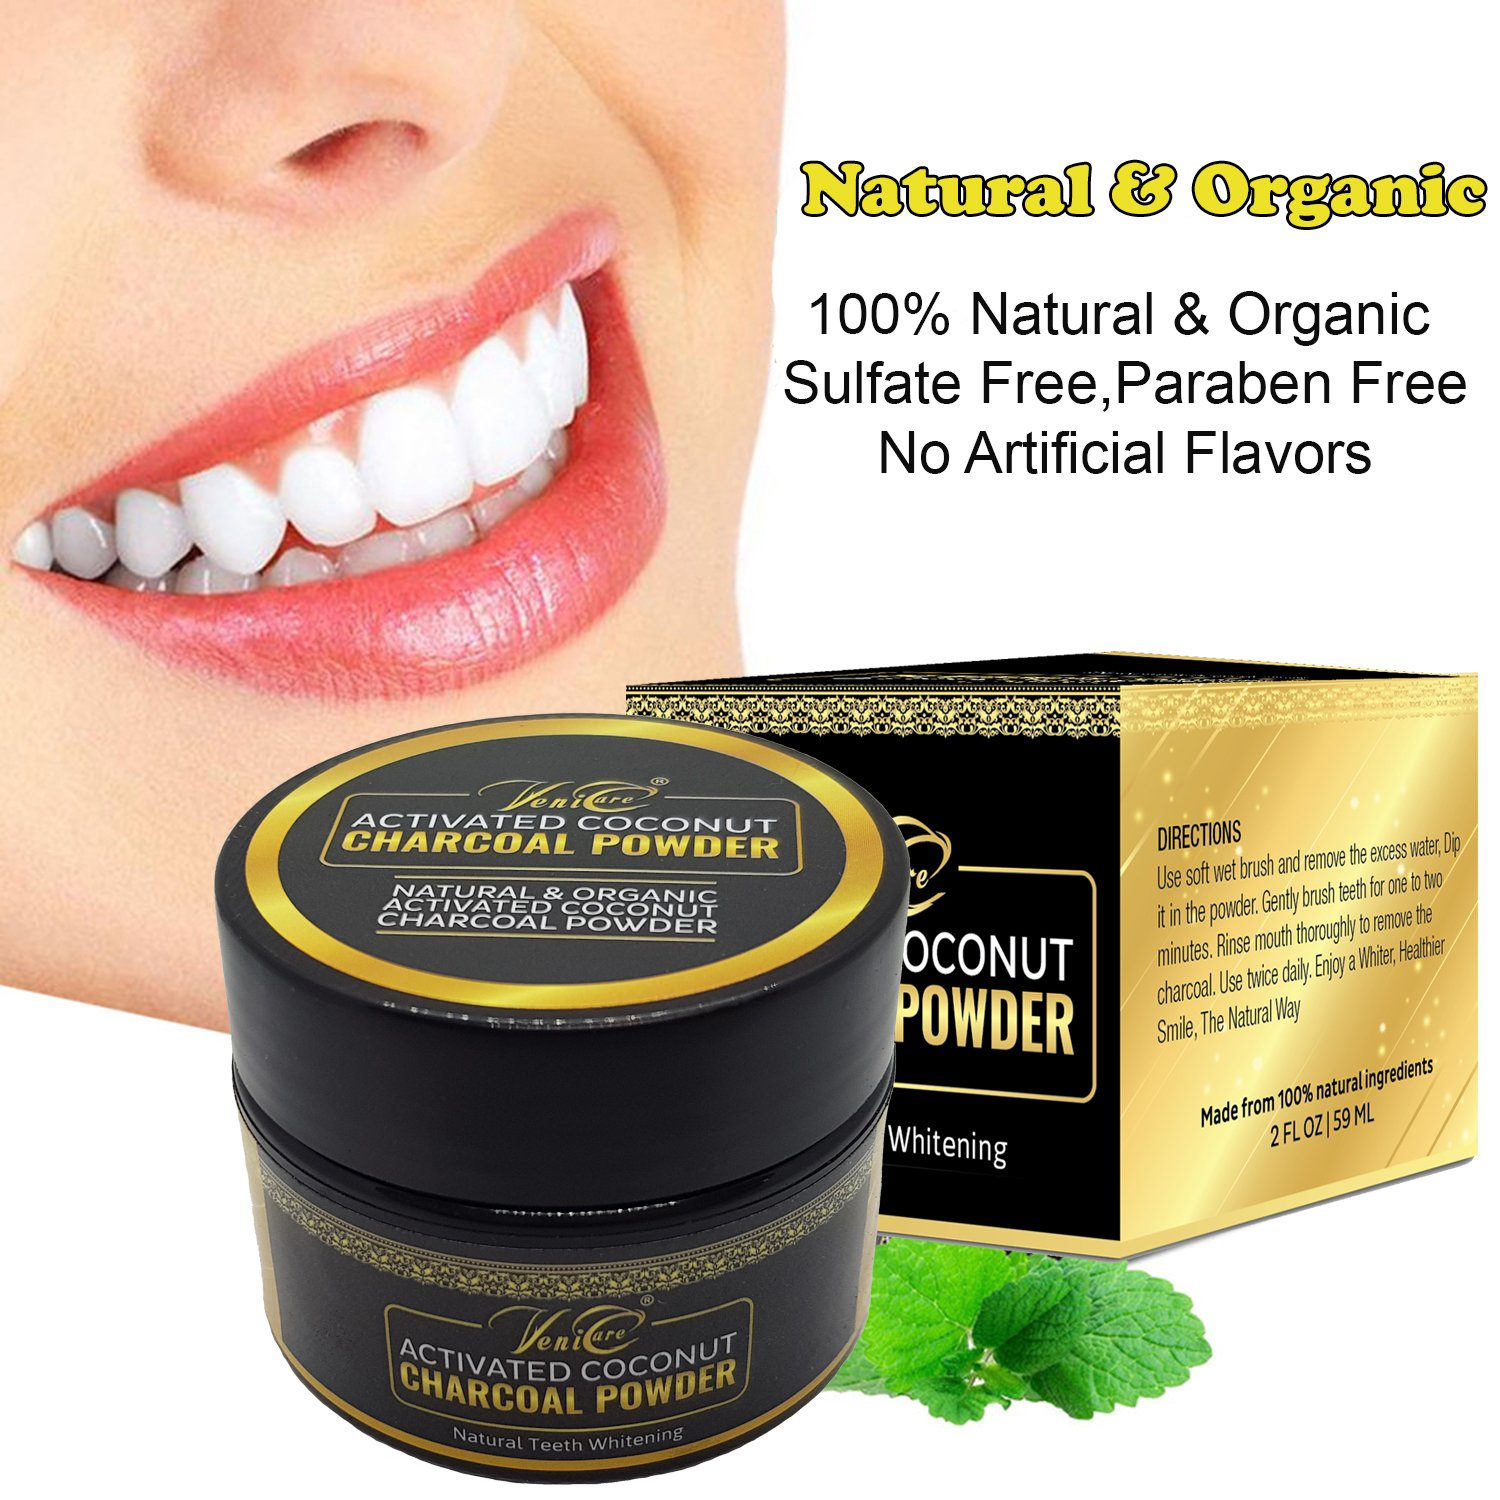 VeniCare All Natural Teeth Whitening Powder with Organic Coconut Activated Charcoal - Safe Effective Tooth Whitener Solution for Stronger Healthy Whiter Teeth 2 FL OZ- 59ML